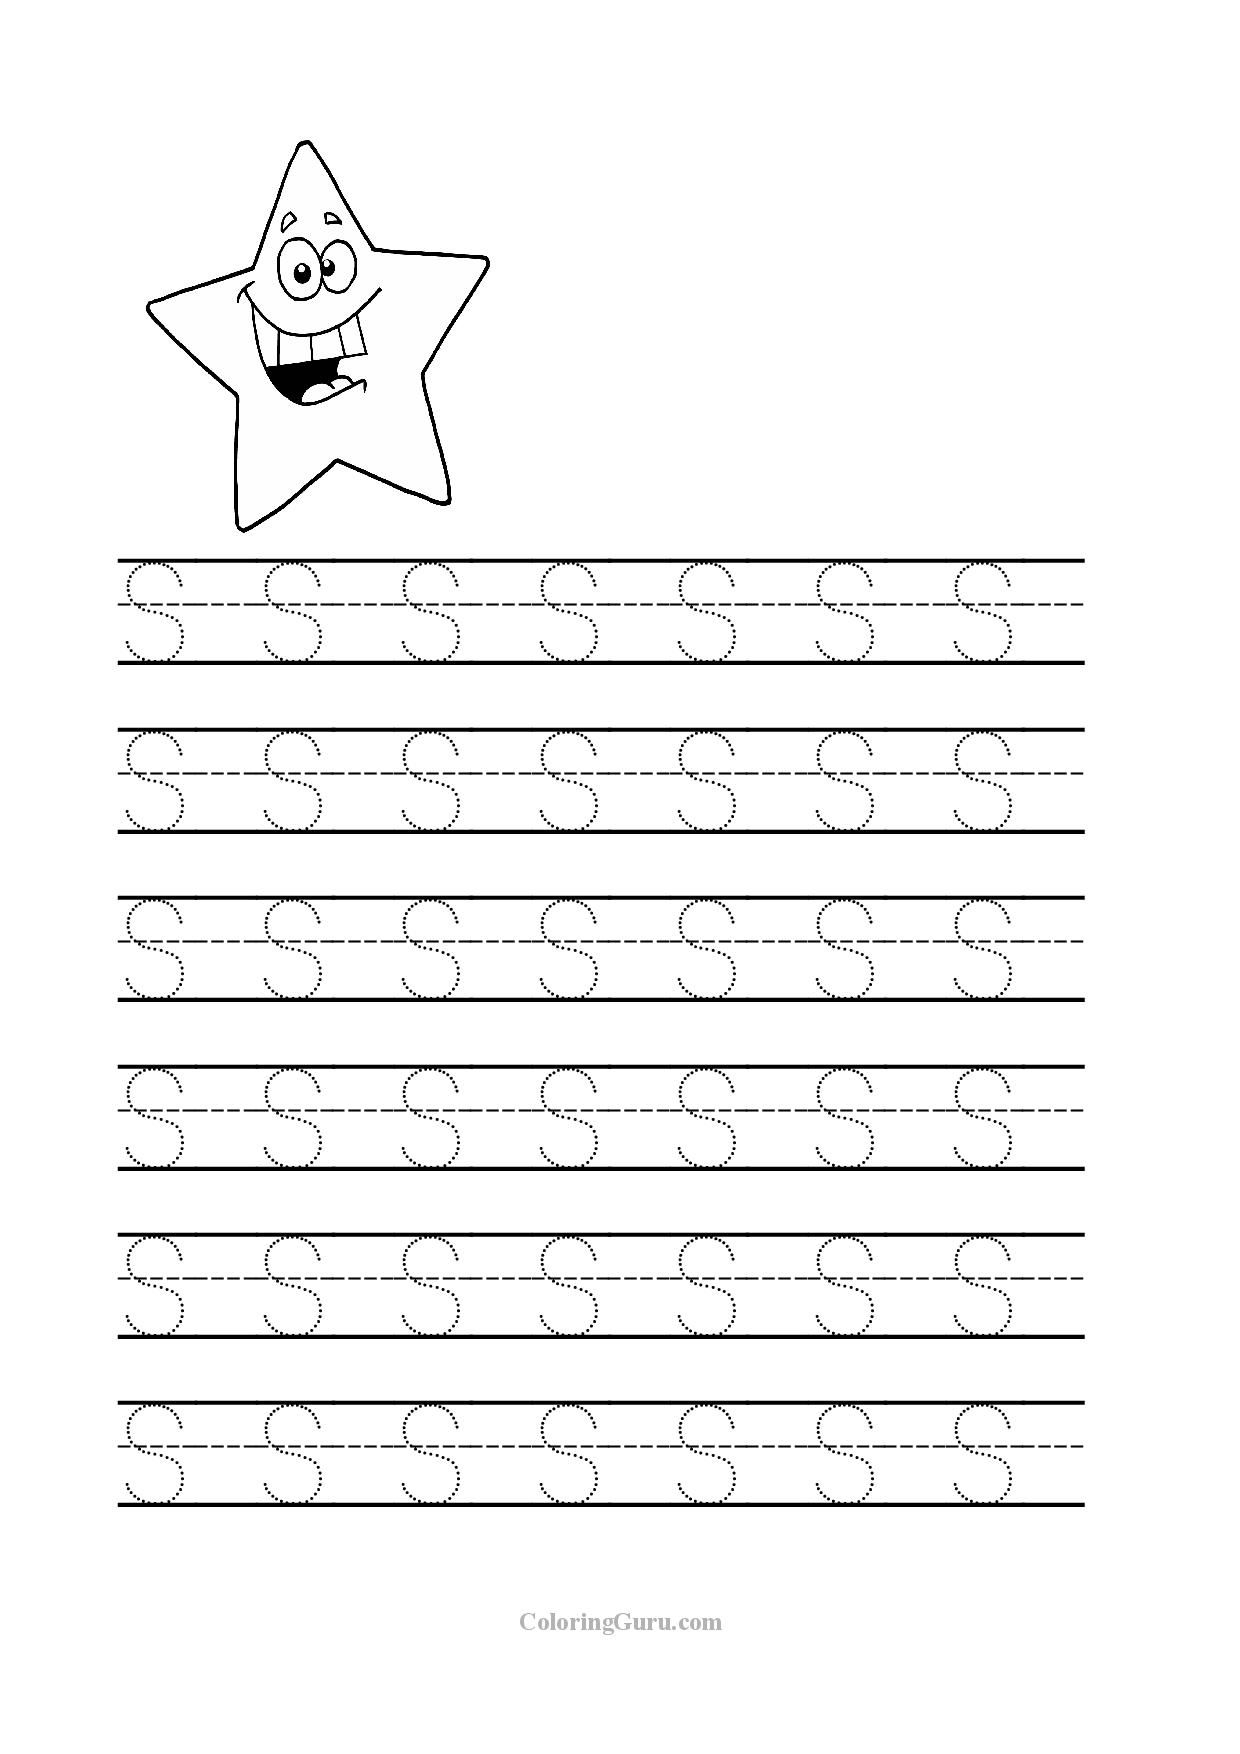 Free Printable Tracing Letter S Worksheets For Preschool pertaining to Free Tracing Alphabet Letters